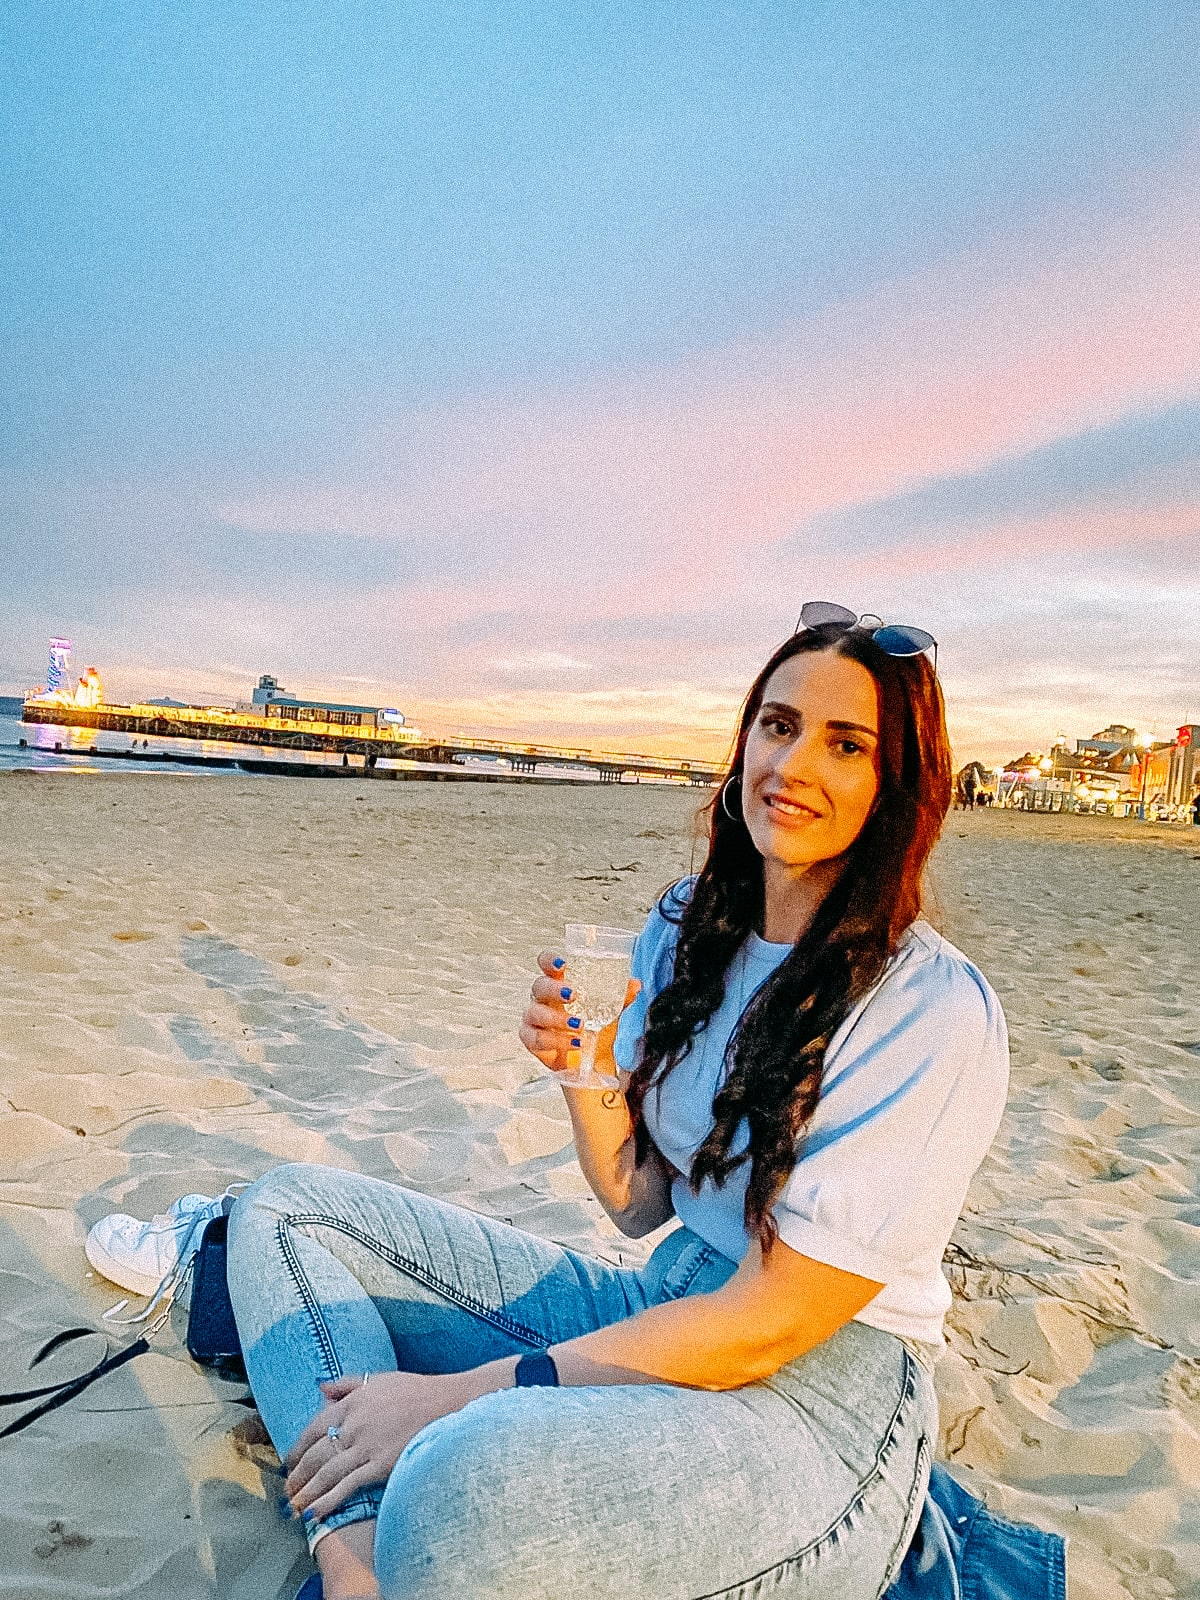 Prosecco on Bournemouth beach at sunset